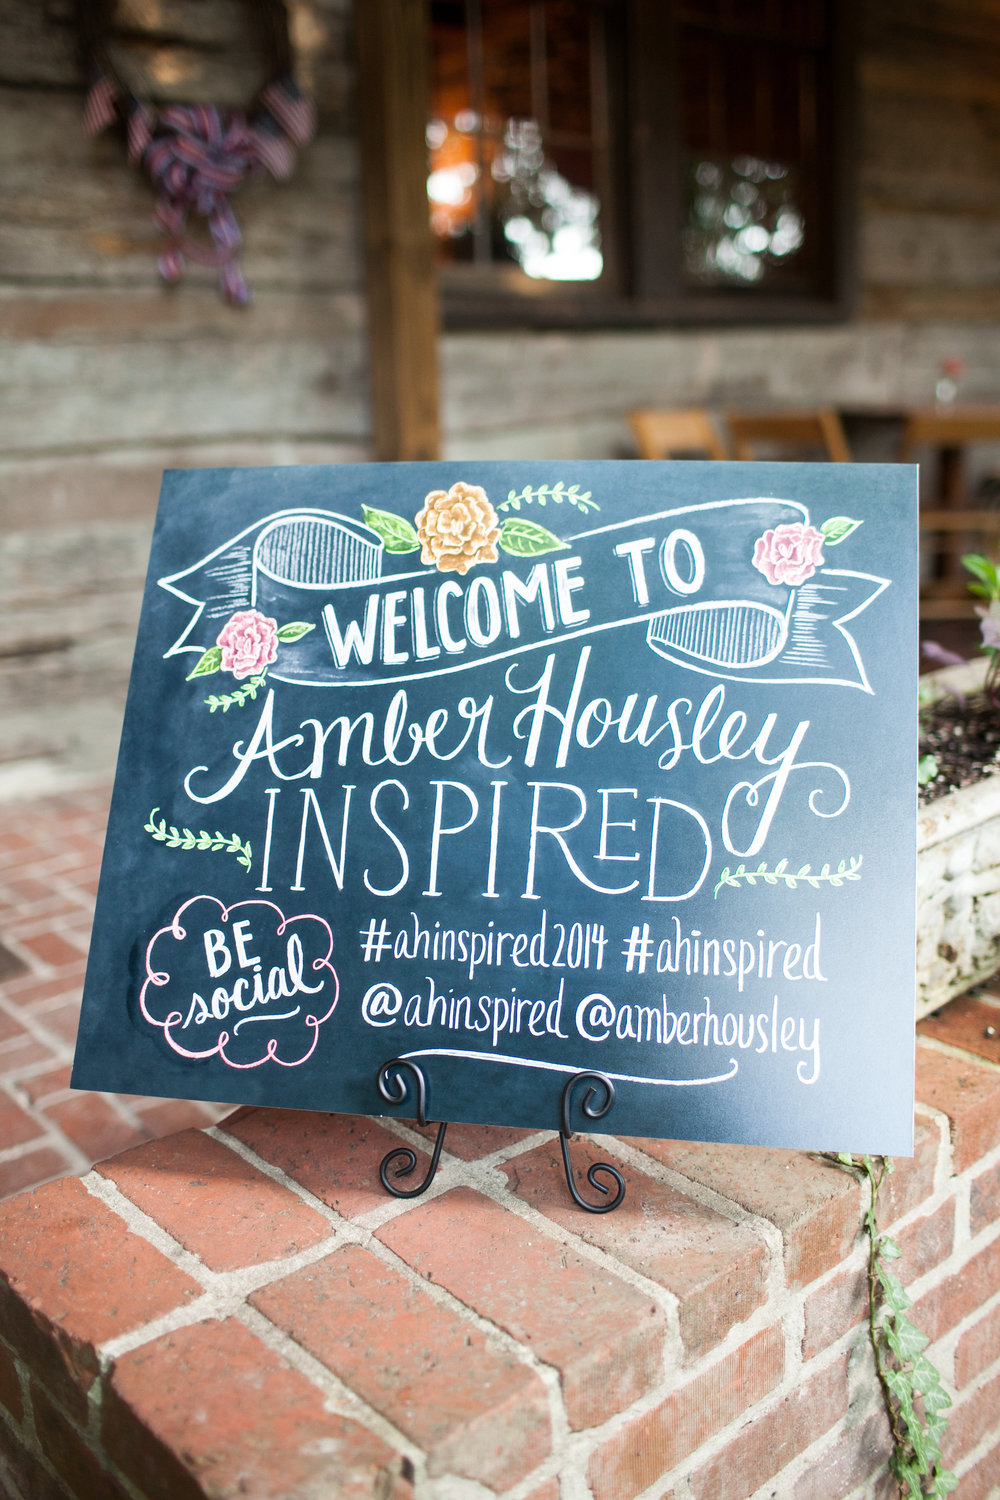 How cute is this chalkboard design by Valerie McKeehan of Lily & Val?!